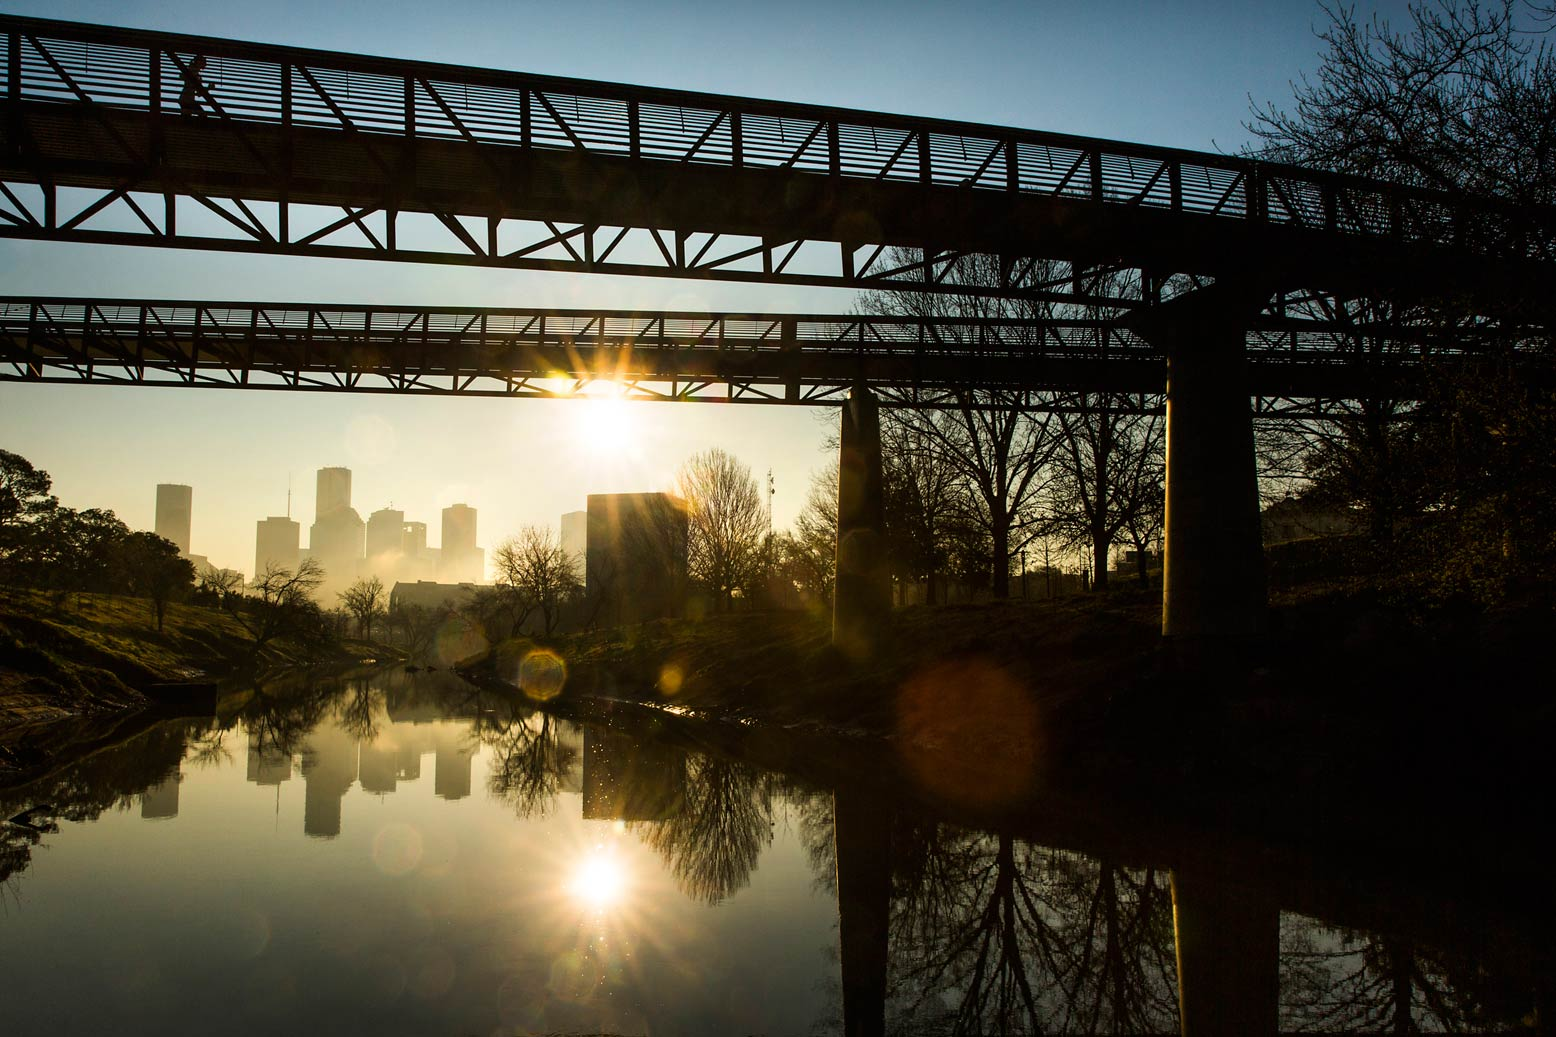 Houston's $800 million river restoration to trigger $56 billion private investment.